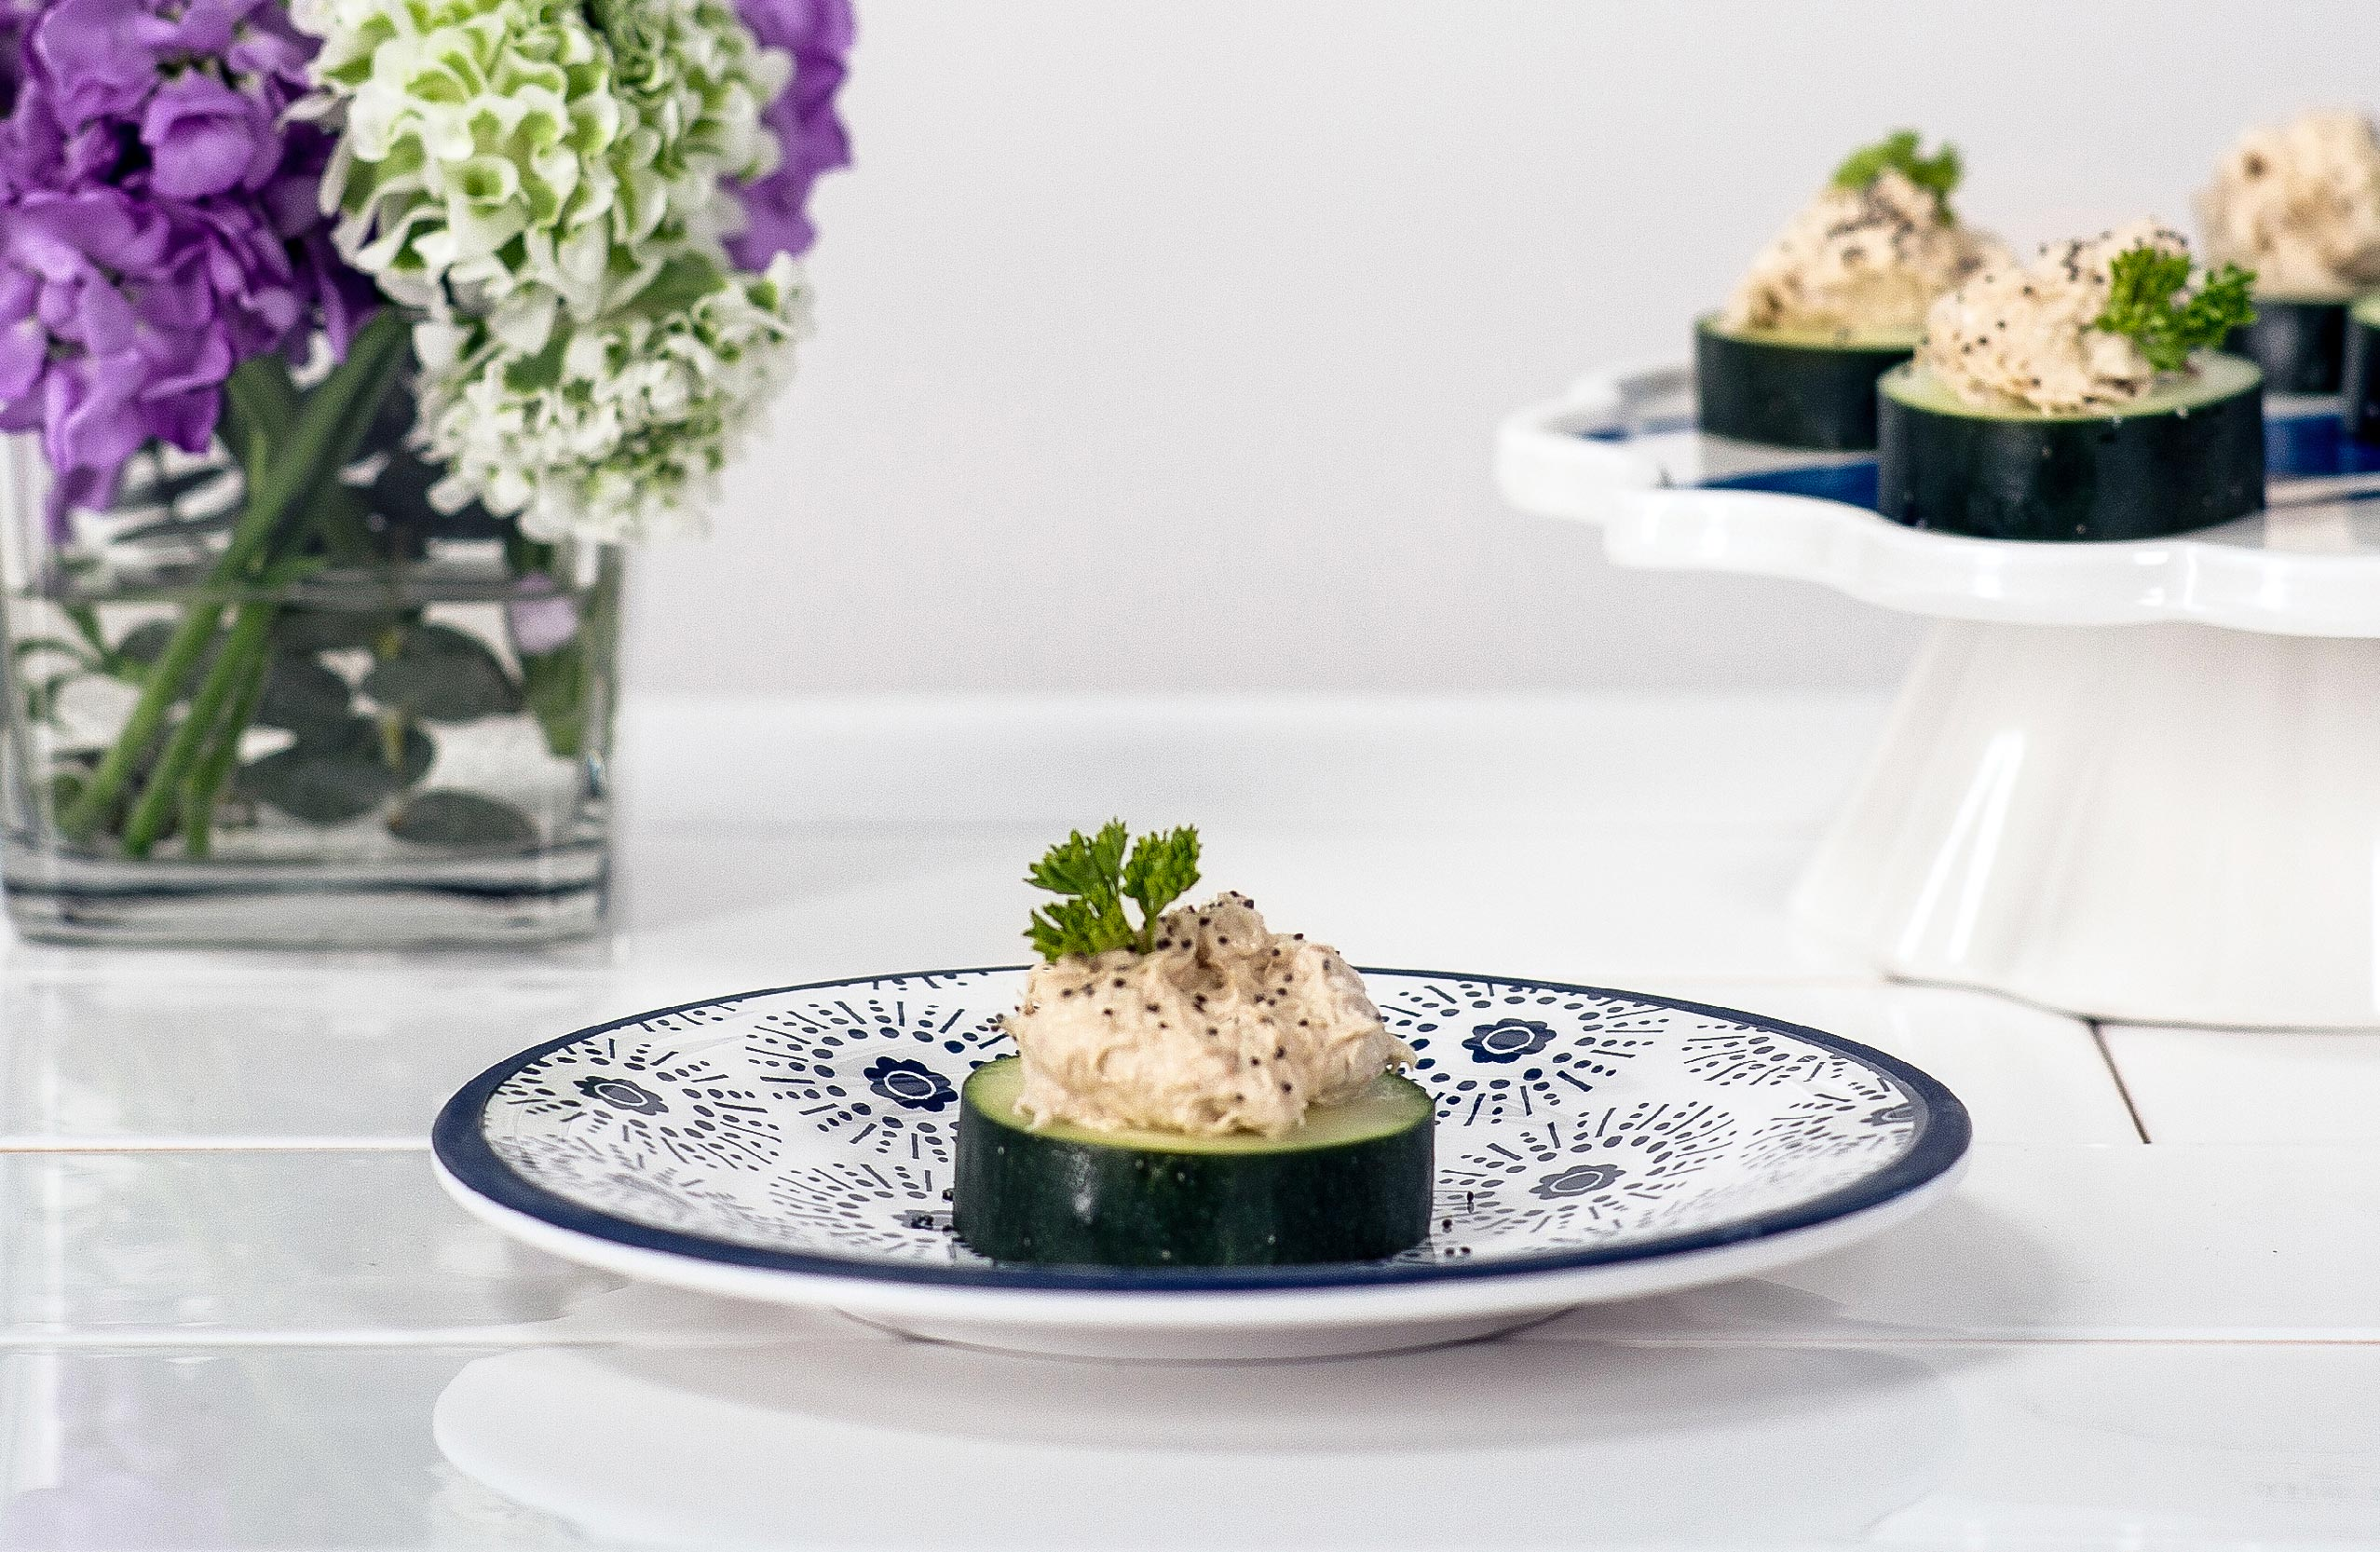 Mackerel Paté